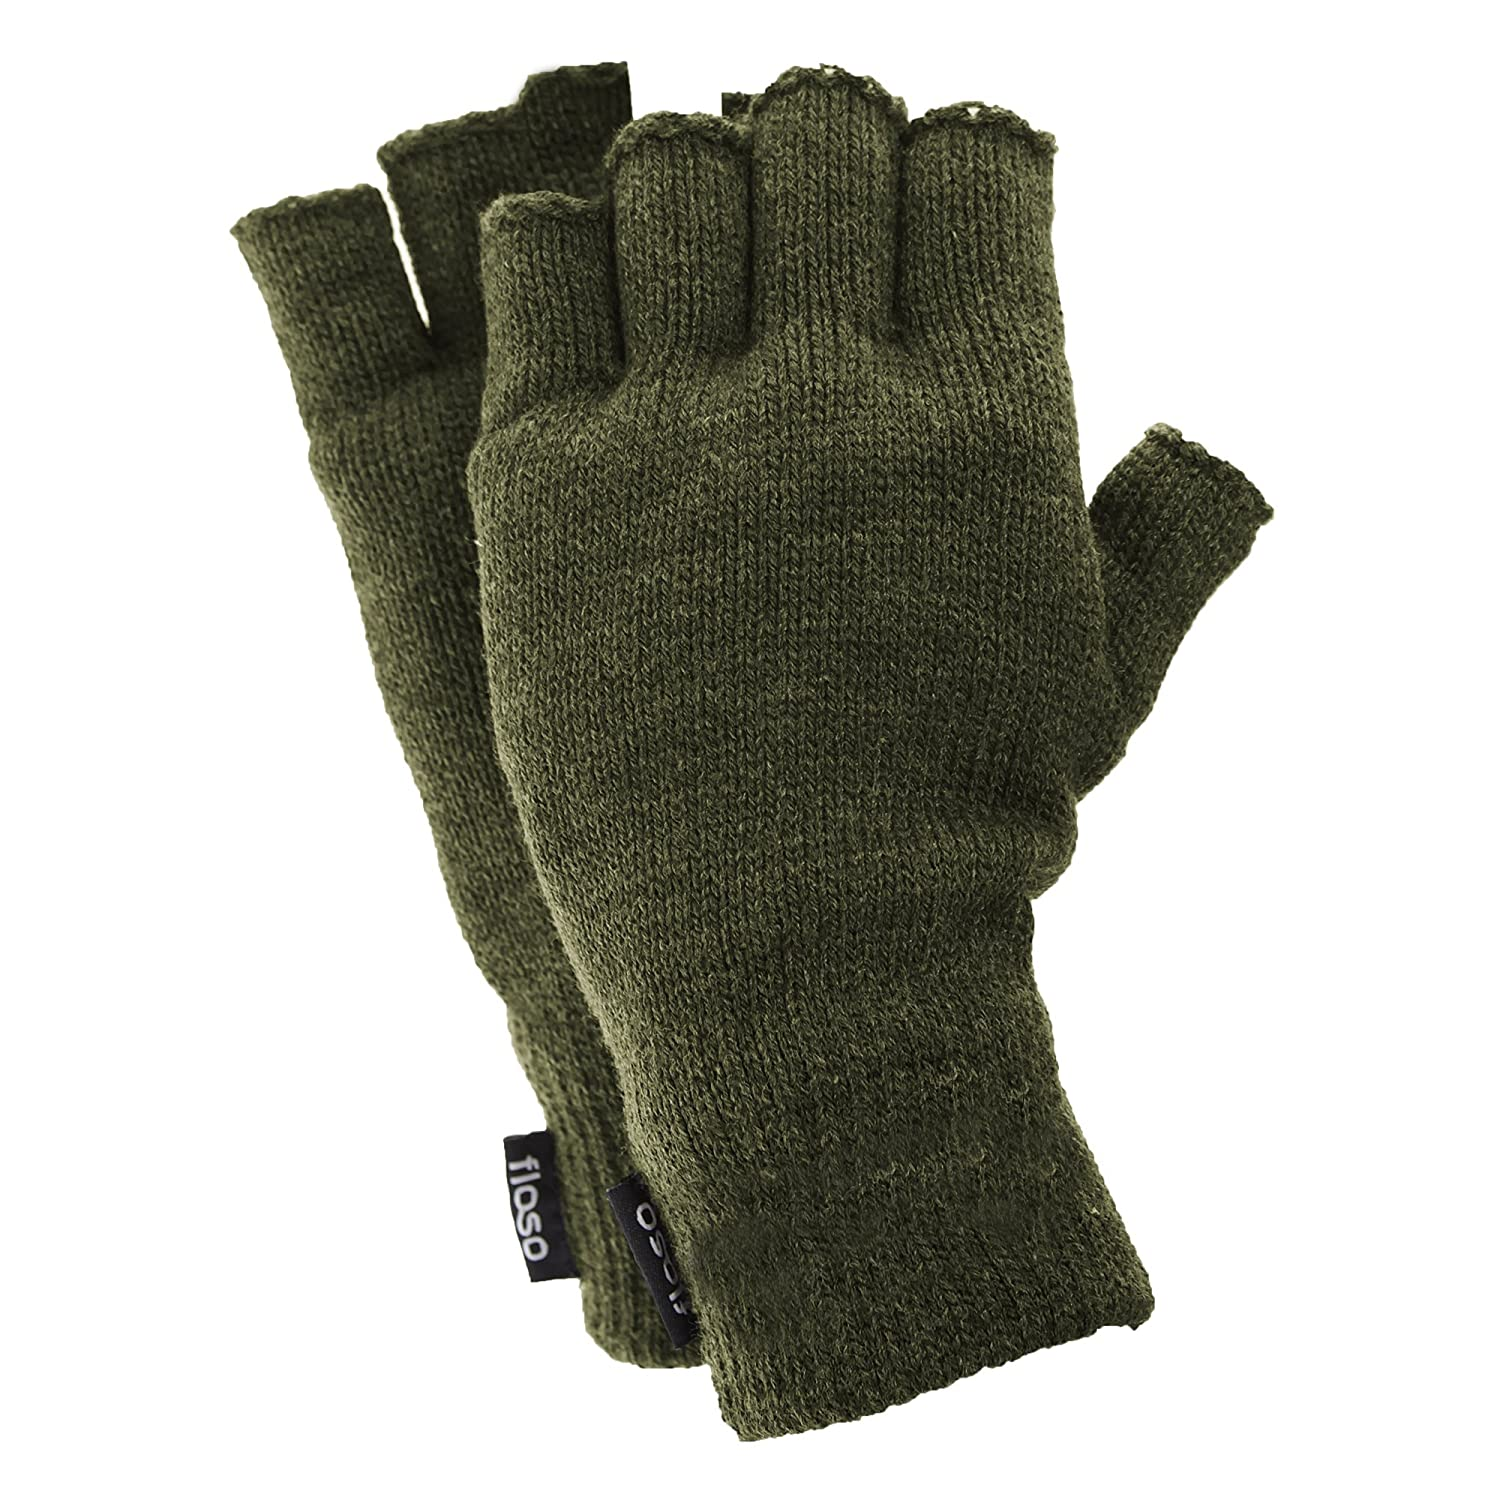 FLOSO Mens Thinsulate Thermal Fingerless Gloves (3M 40g) (One Size Fits All) (Black) UTGL355_5